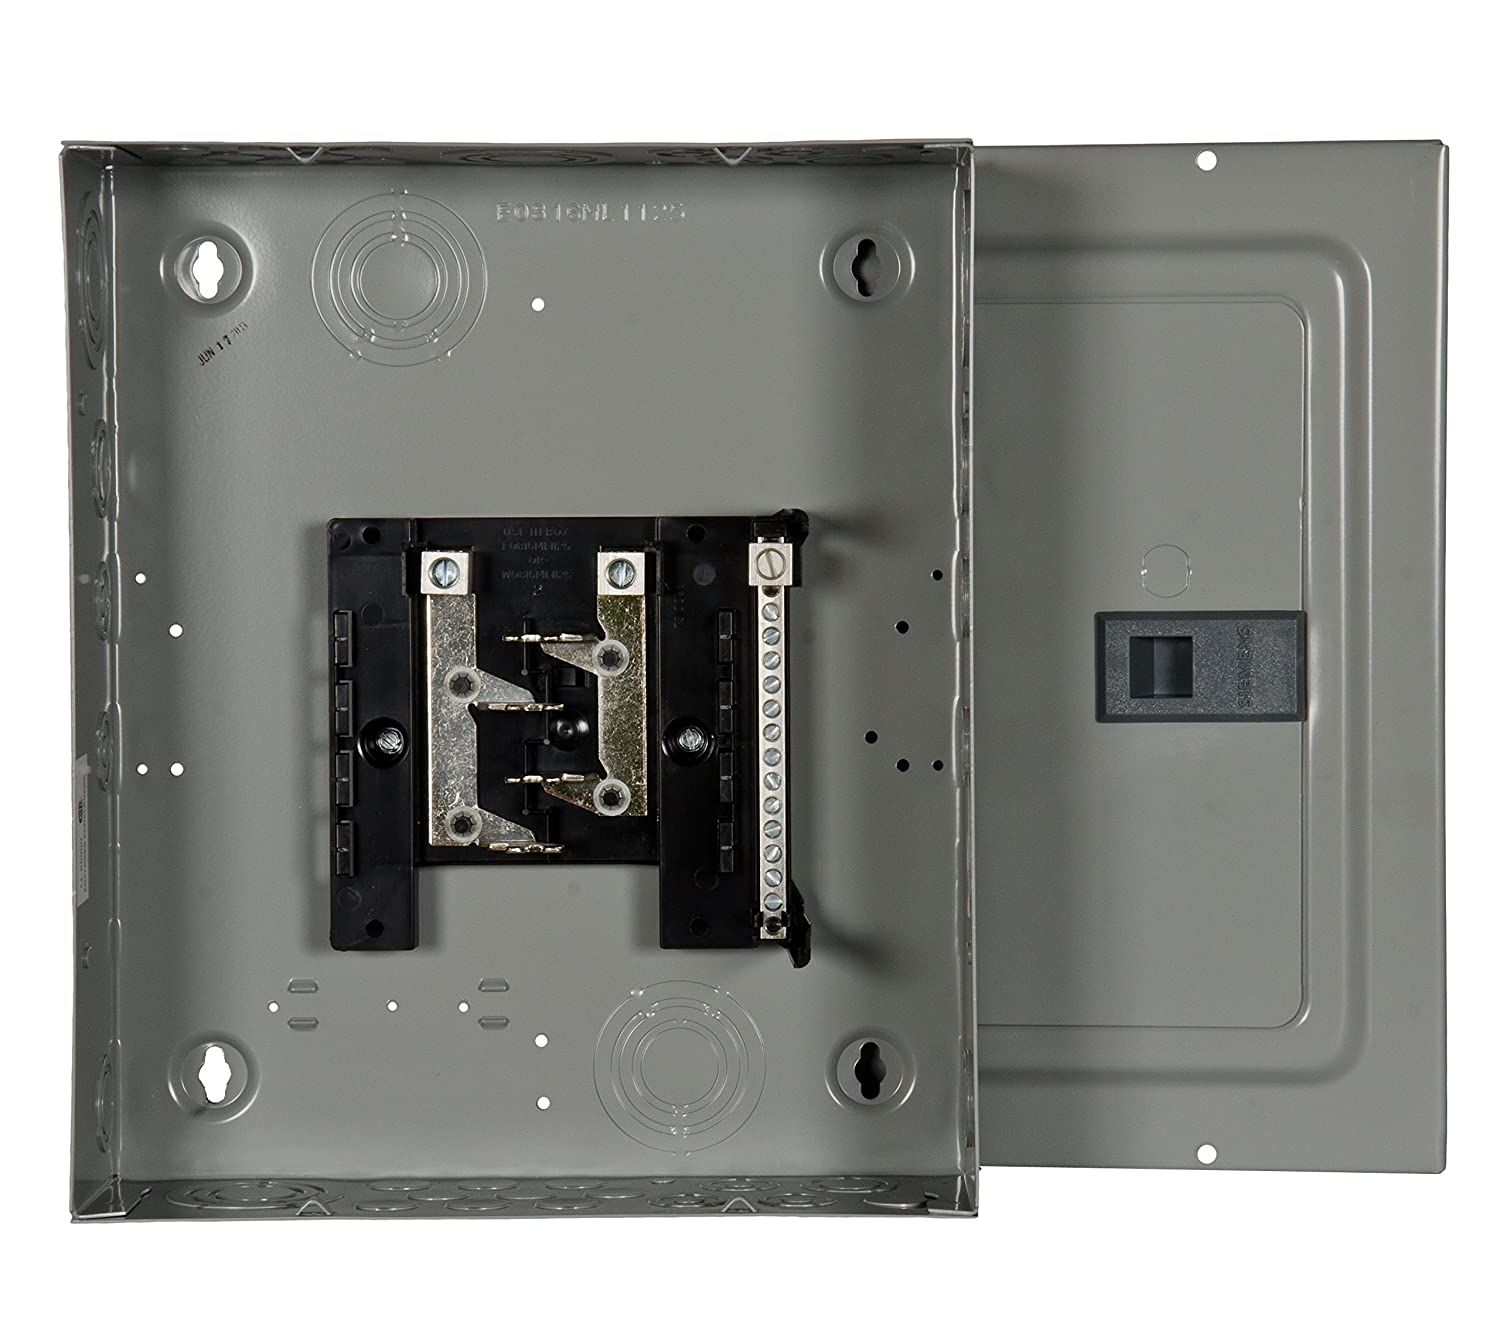 91w41EUr2NL._SL1500_ circuit breaker panels amazon com electrical breakers, load  at gsmx.co